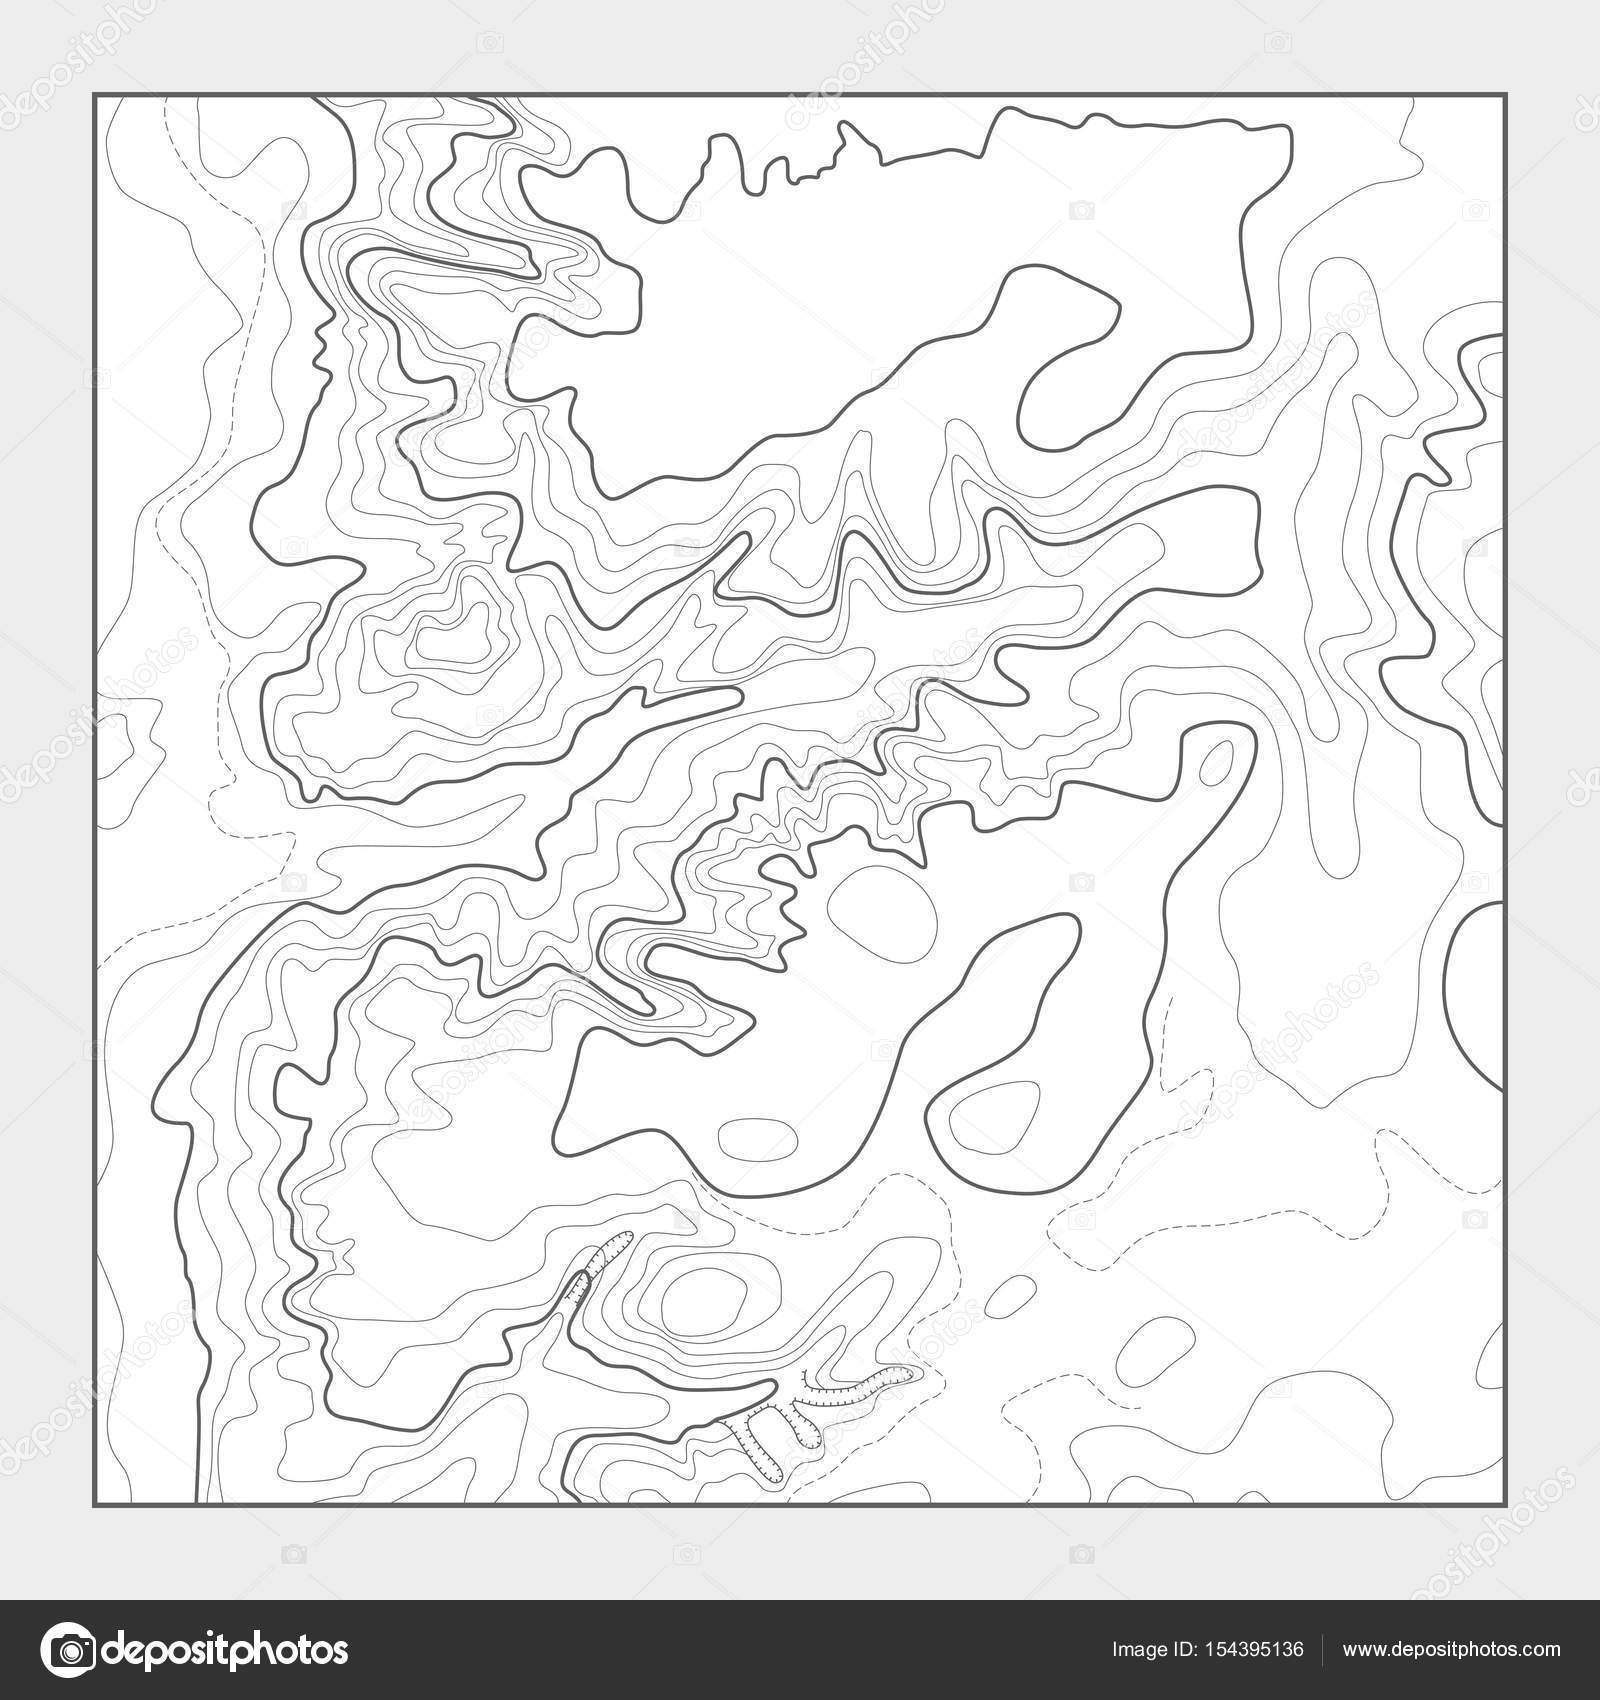 Topographic contour map background - topo heightmap — Stock Vector